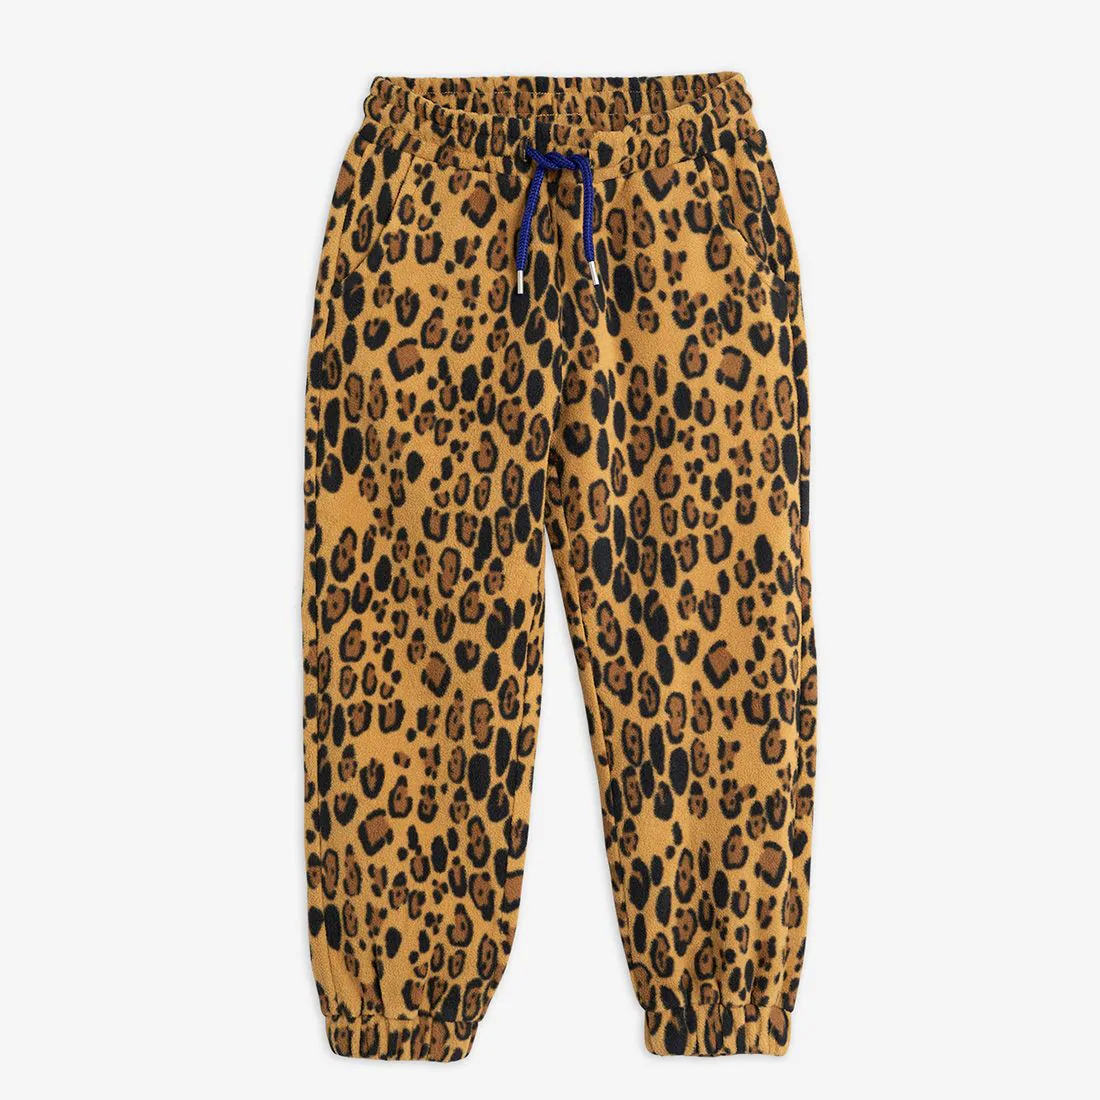 Adorable Leopard Kids Fleece Trousers